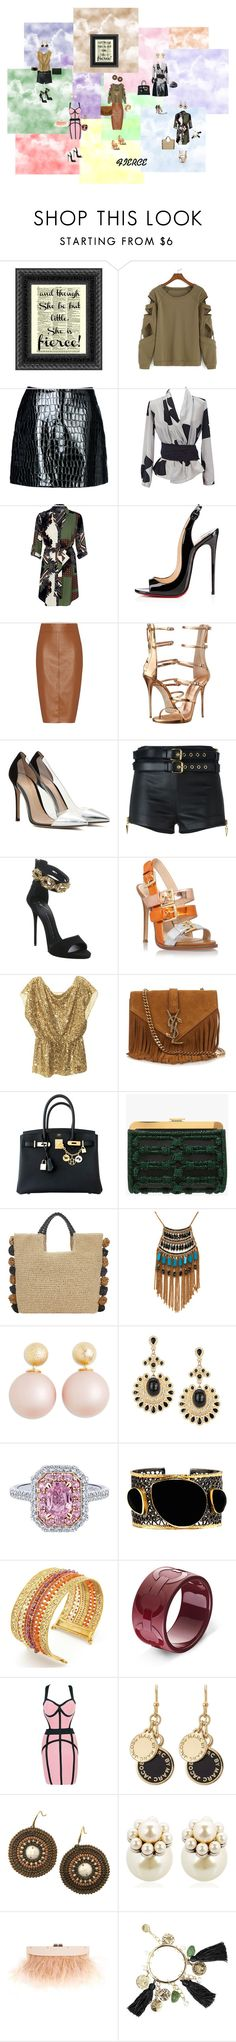 """Fierce"" by studiodinteriors on Polyvore featuring Jolie By Edward Spiers, Emporio Armani, River Island, Christian Louboutin, Bailey 44, Giuseppe Zanotti, Gianvito Rossi, Nine West, Alice + Olivia and Yves Saint Laurent"